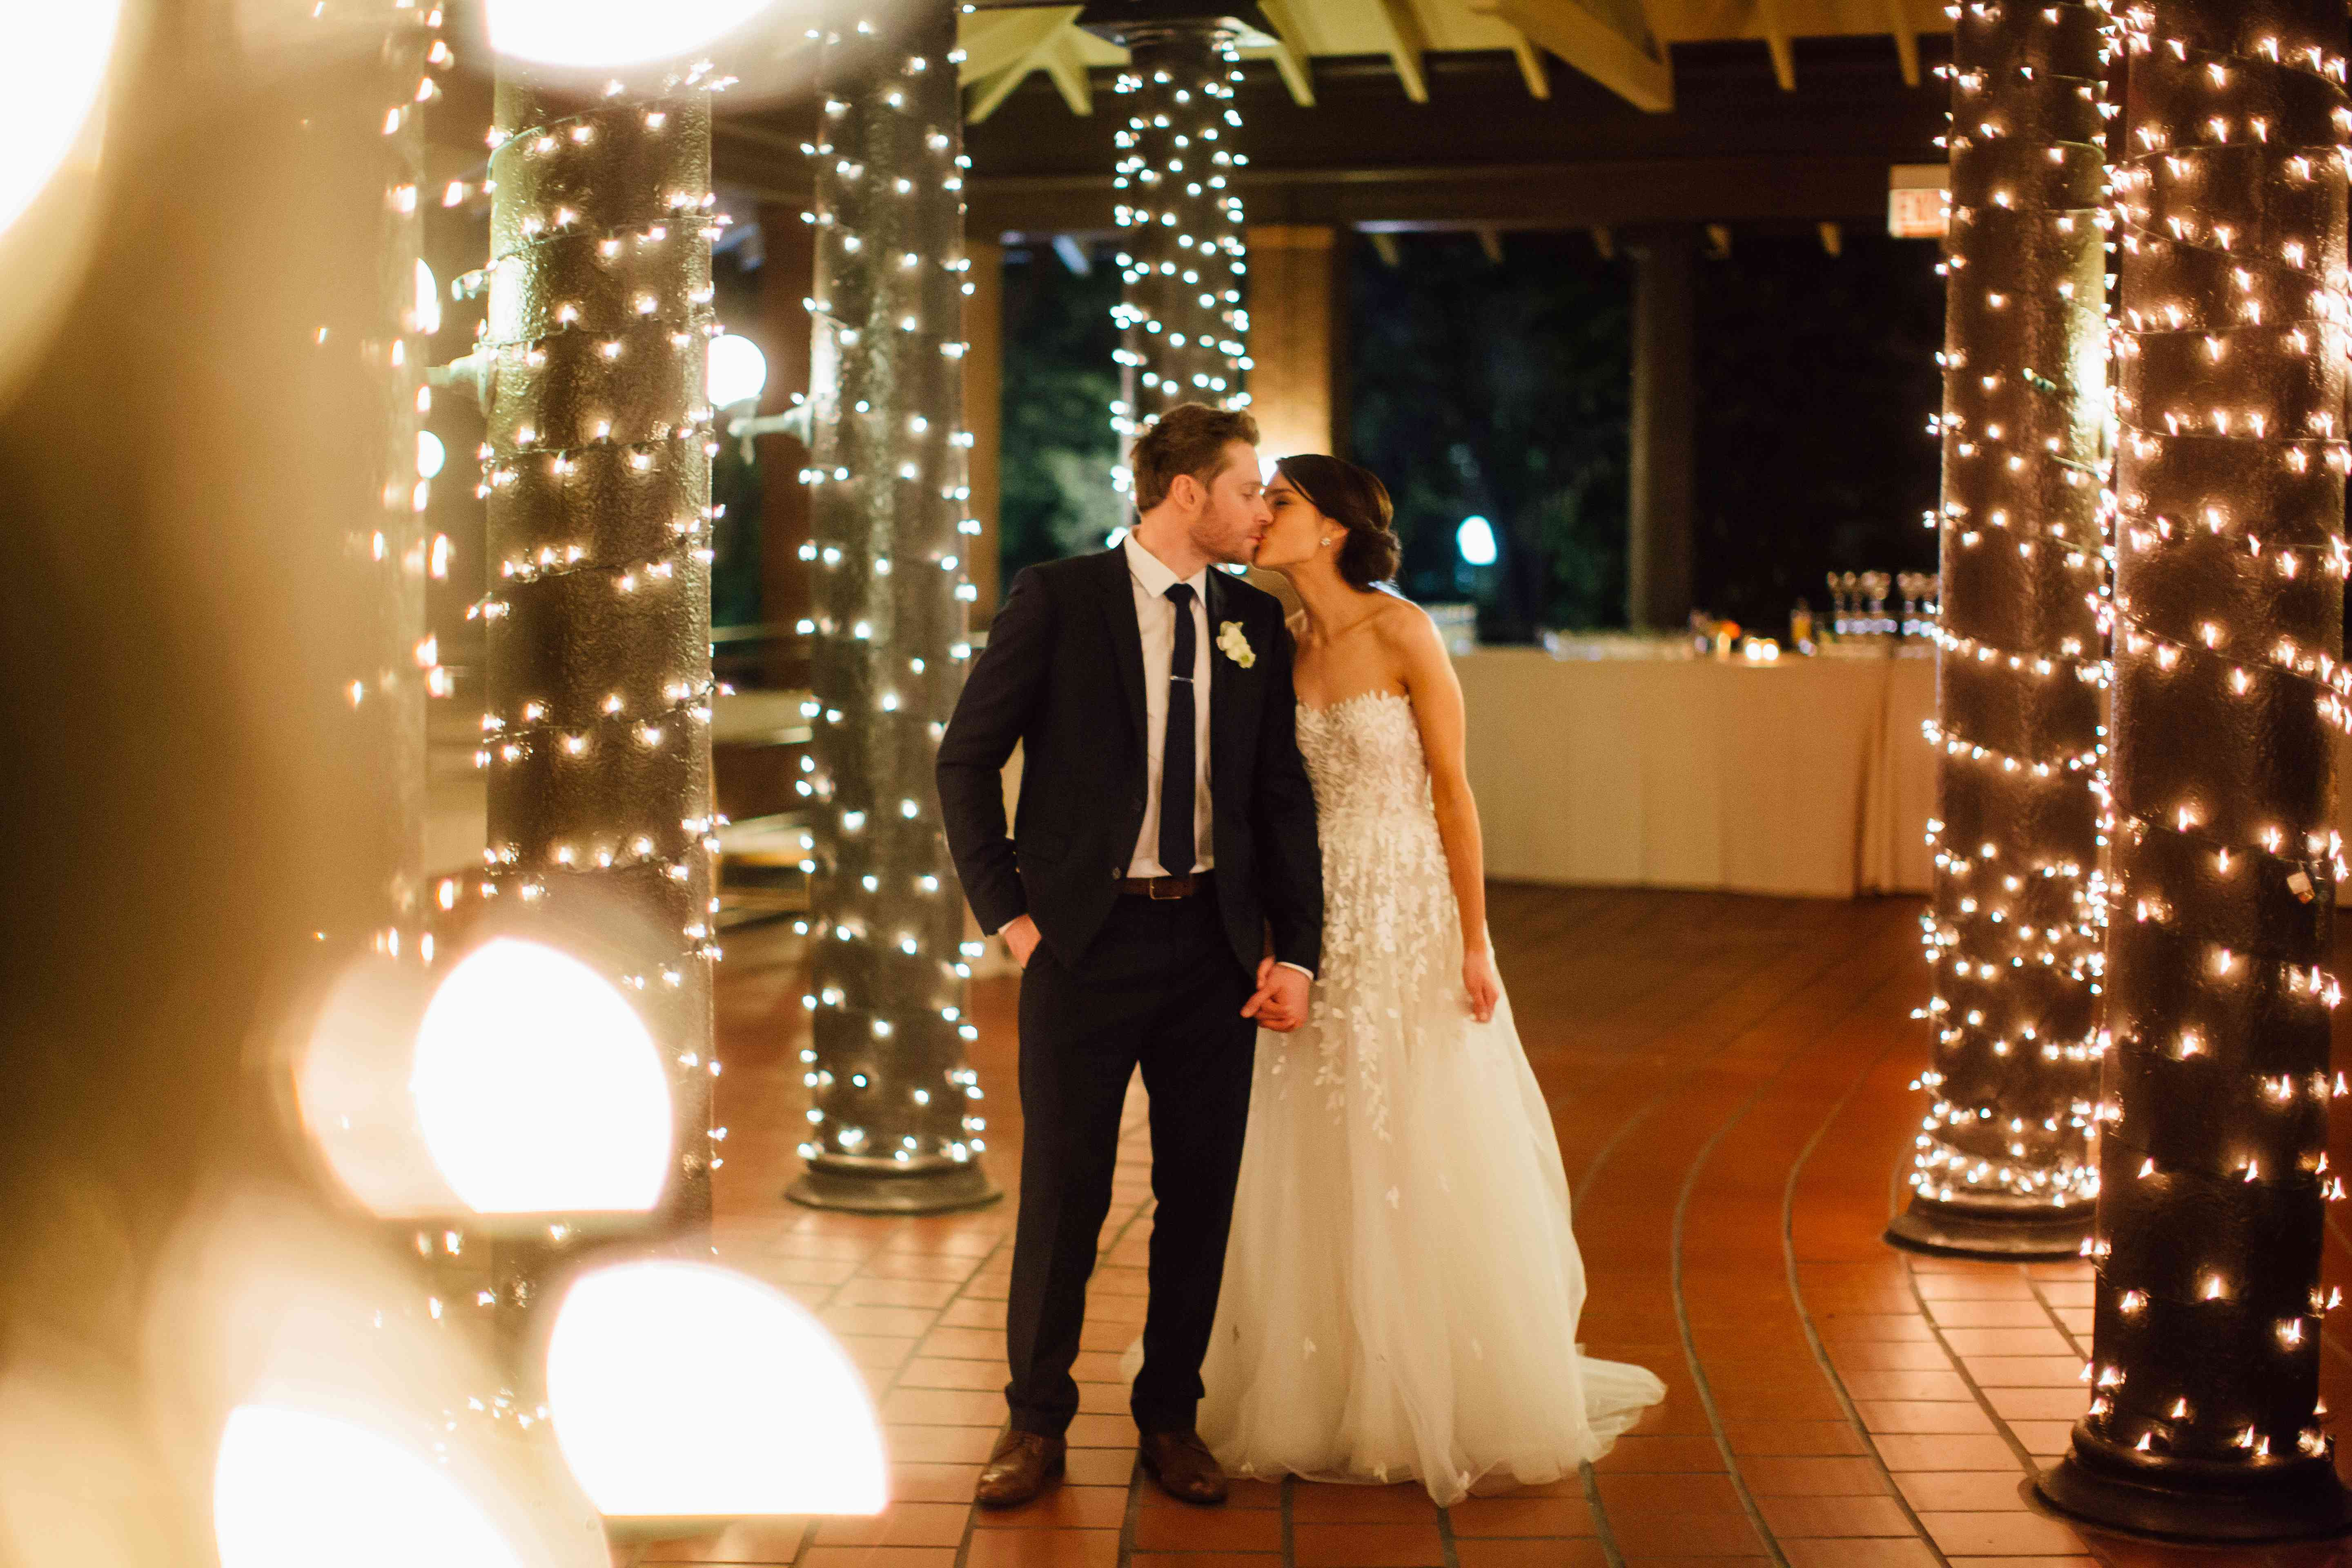 <p>Bride and Groom with String Lights</p><br><br>